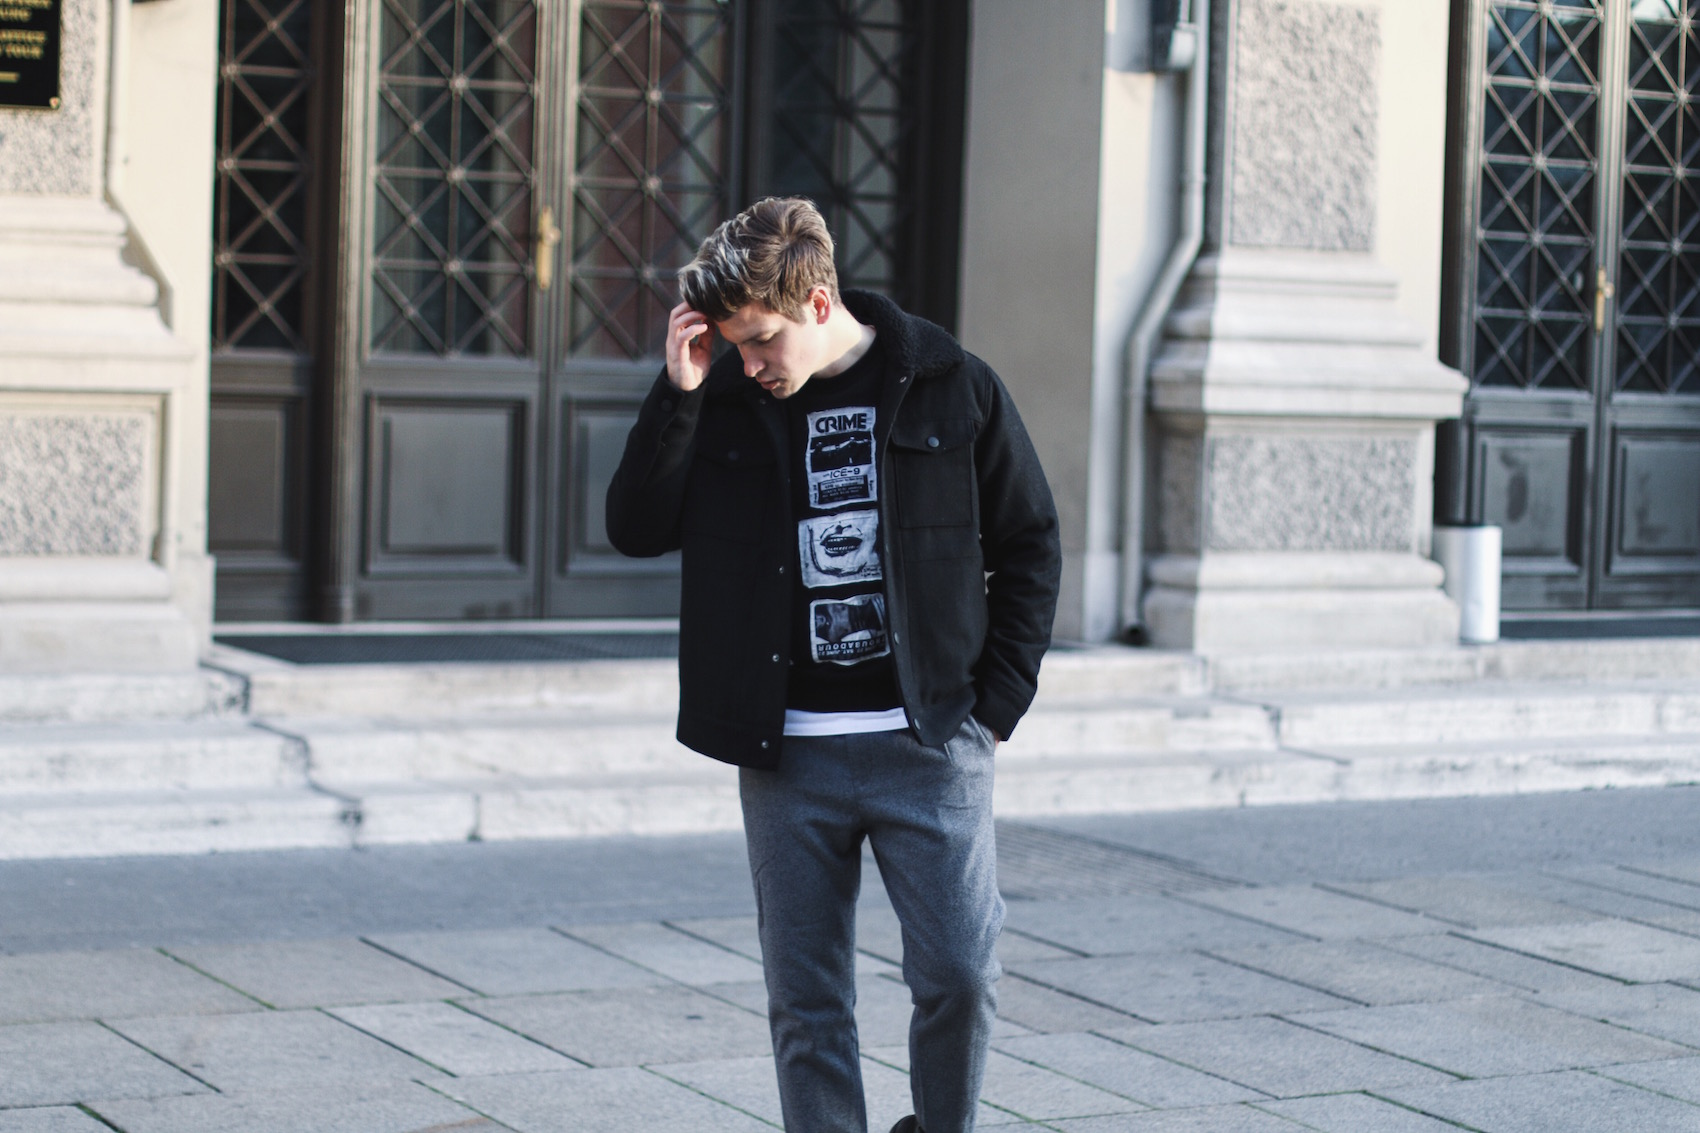 Weekday Jeans Winter Outfit_Streetstyle Herrenmode_Meanwhile in Awesometown_Männnerblog_Menswear_Lifestyleblog_Maleblogger_Maleinfluencer4